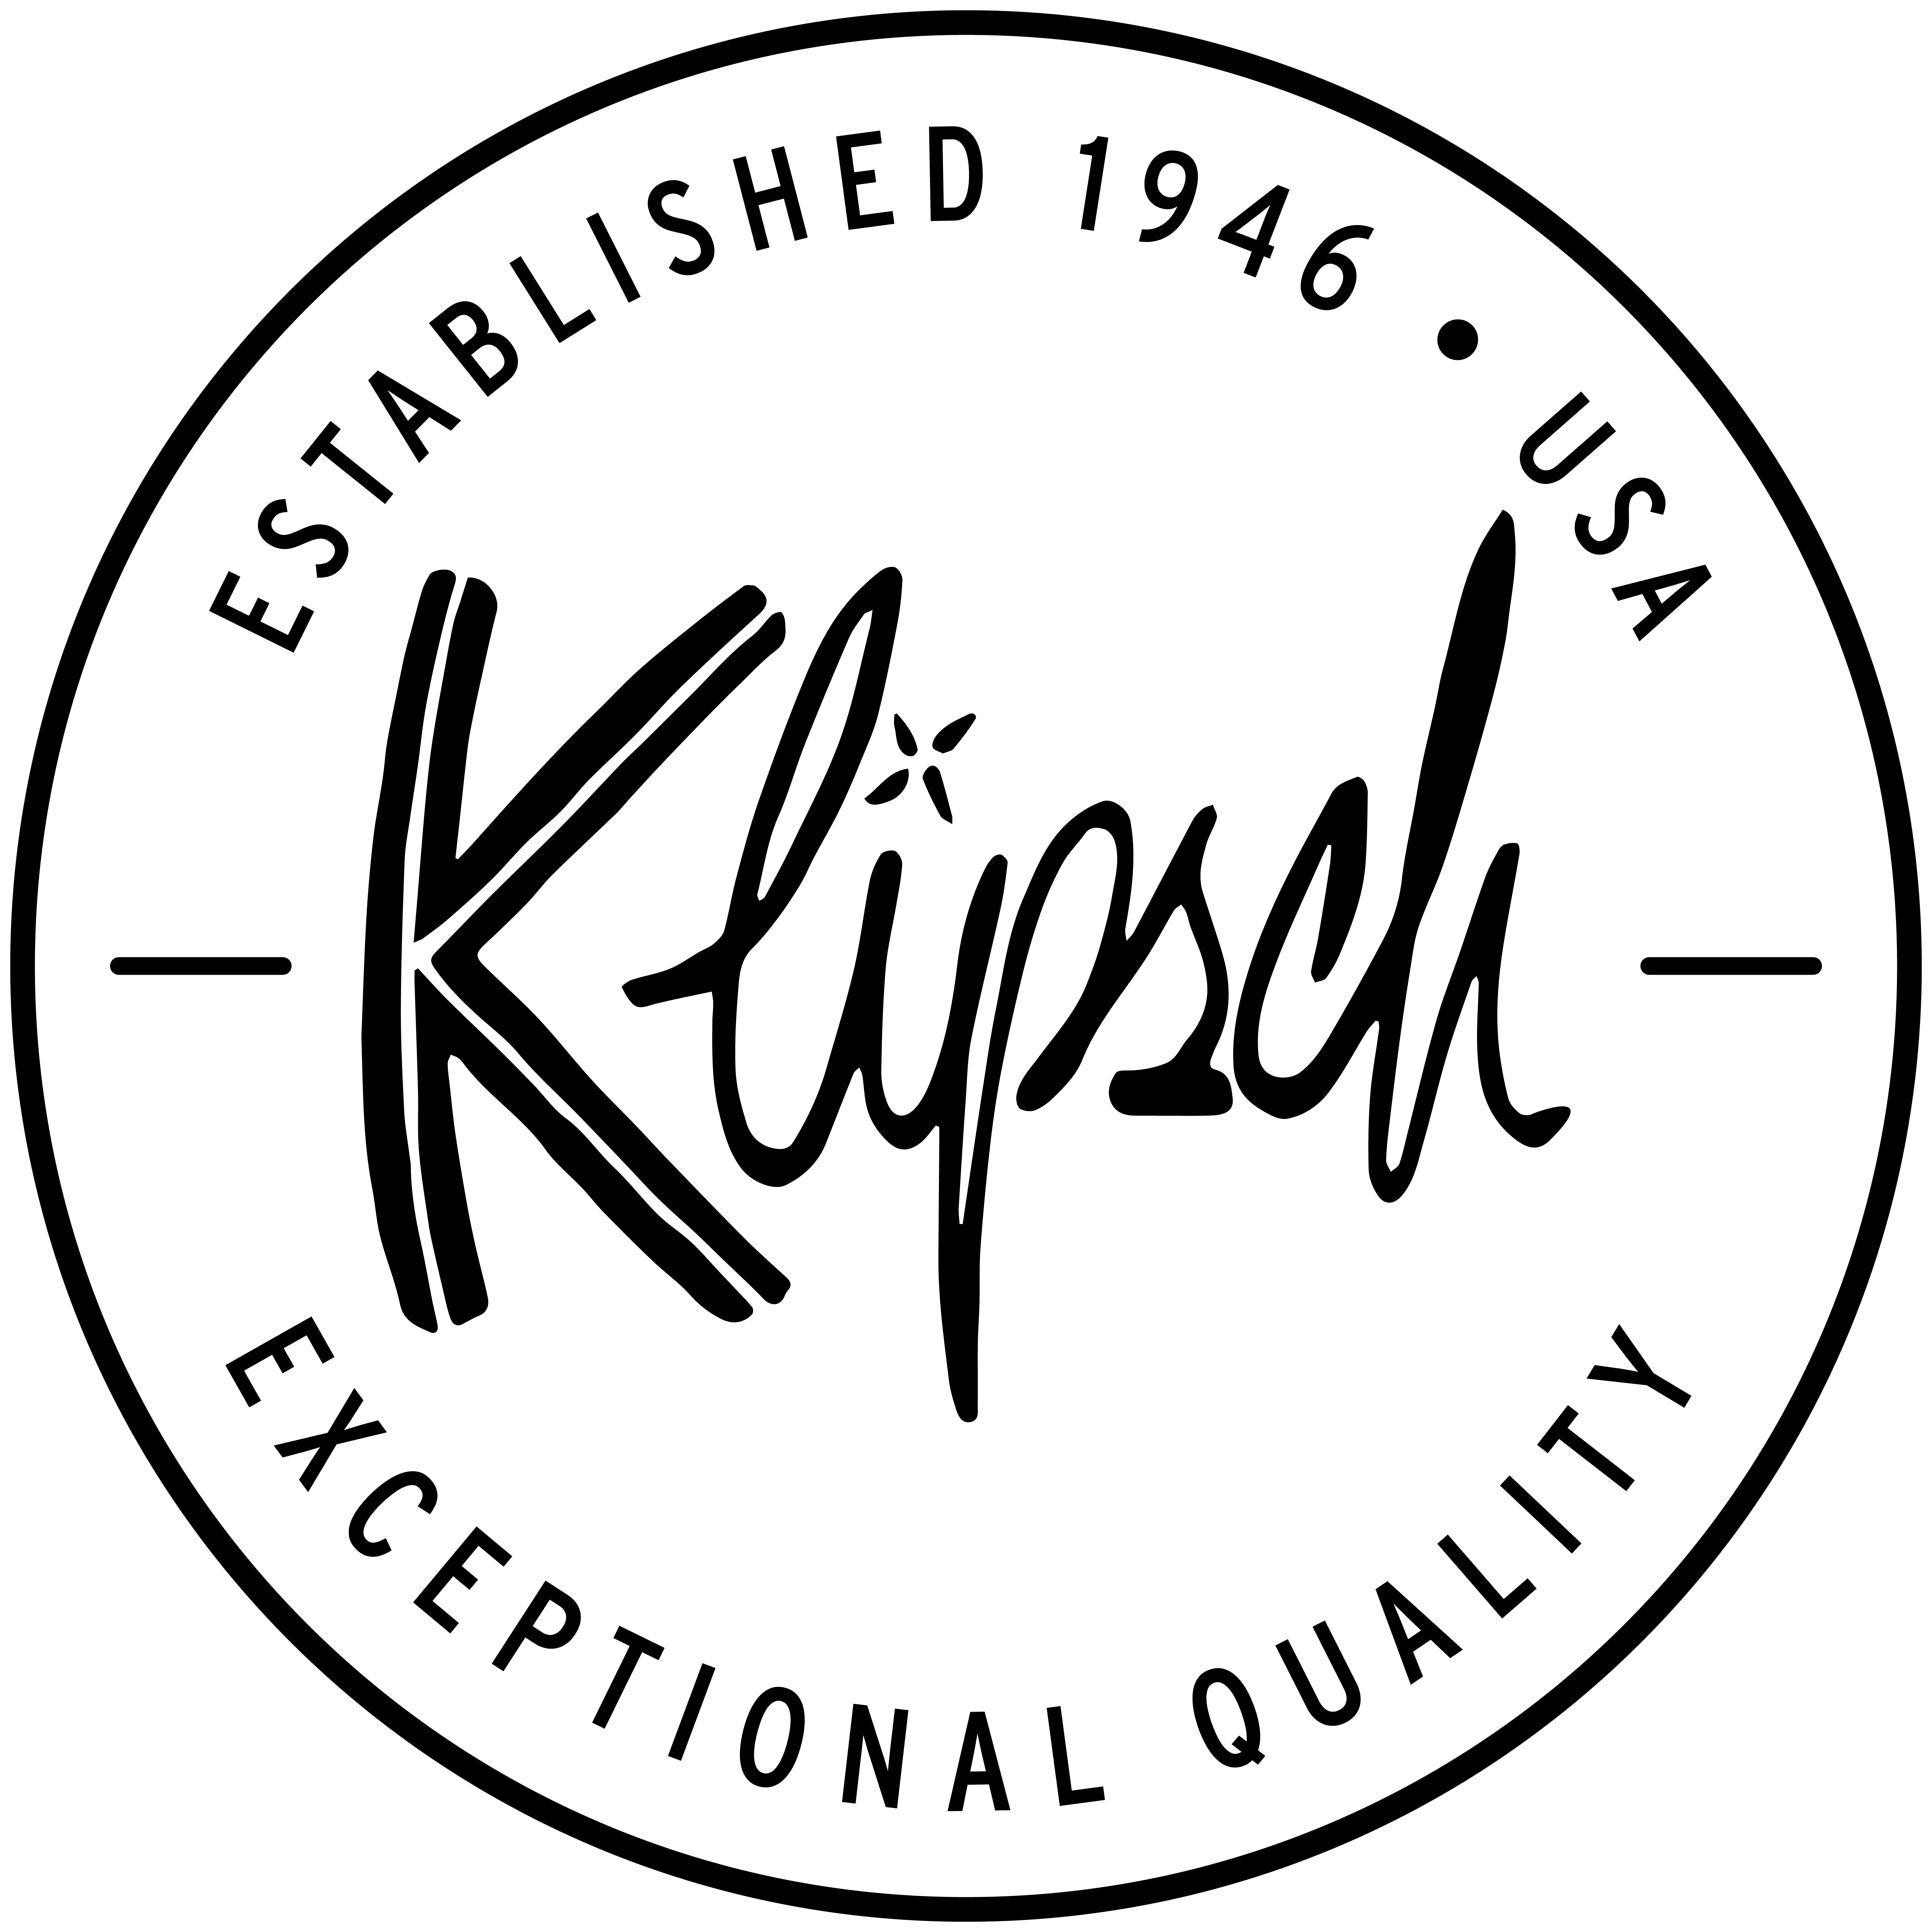 Klipsch Help Center home page